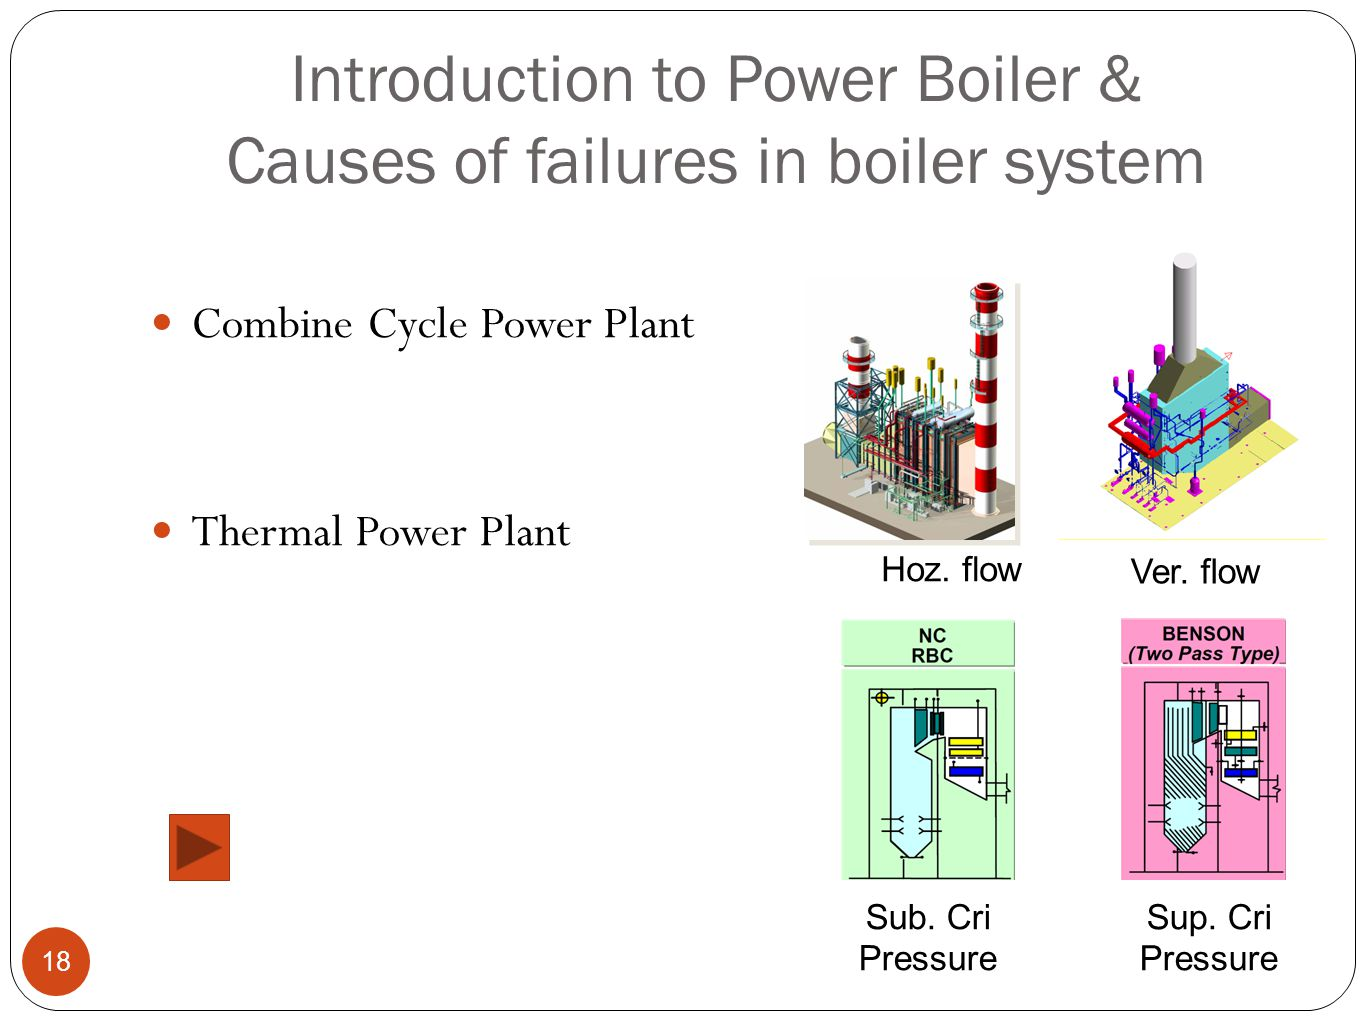 Introduction to Power Boiler & Causes of failures in boiler system Combine Cycle Power Plant Thermal Power Plant Hoz. flow Ver. flow Sub. Cri Pressure